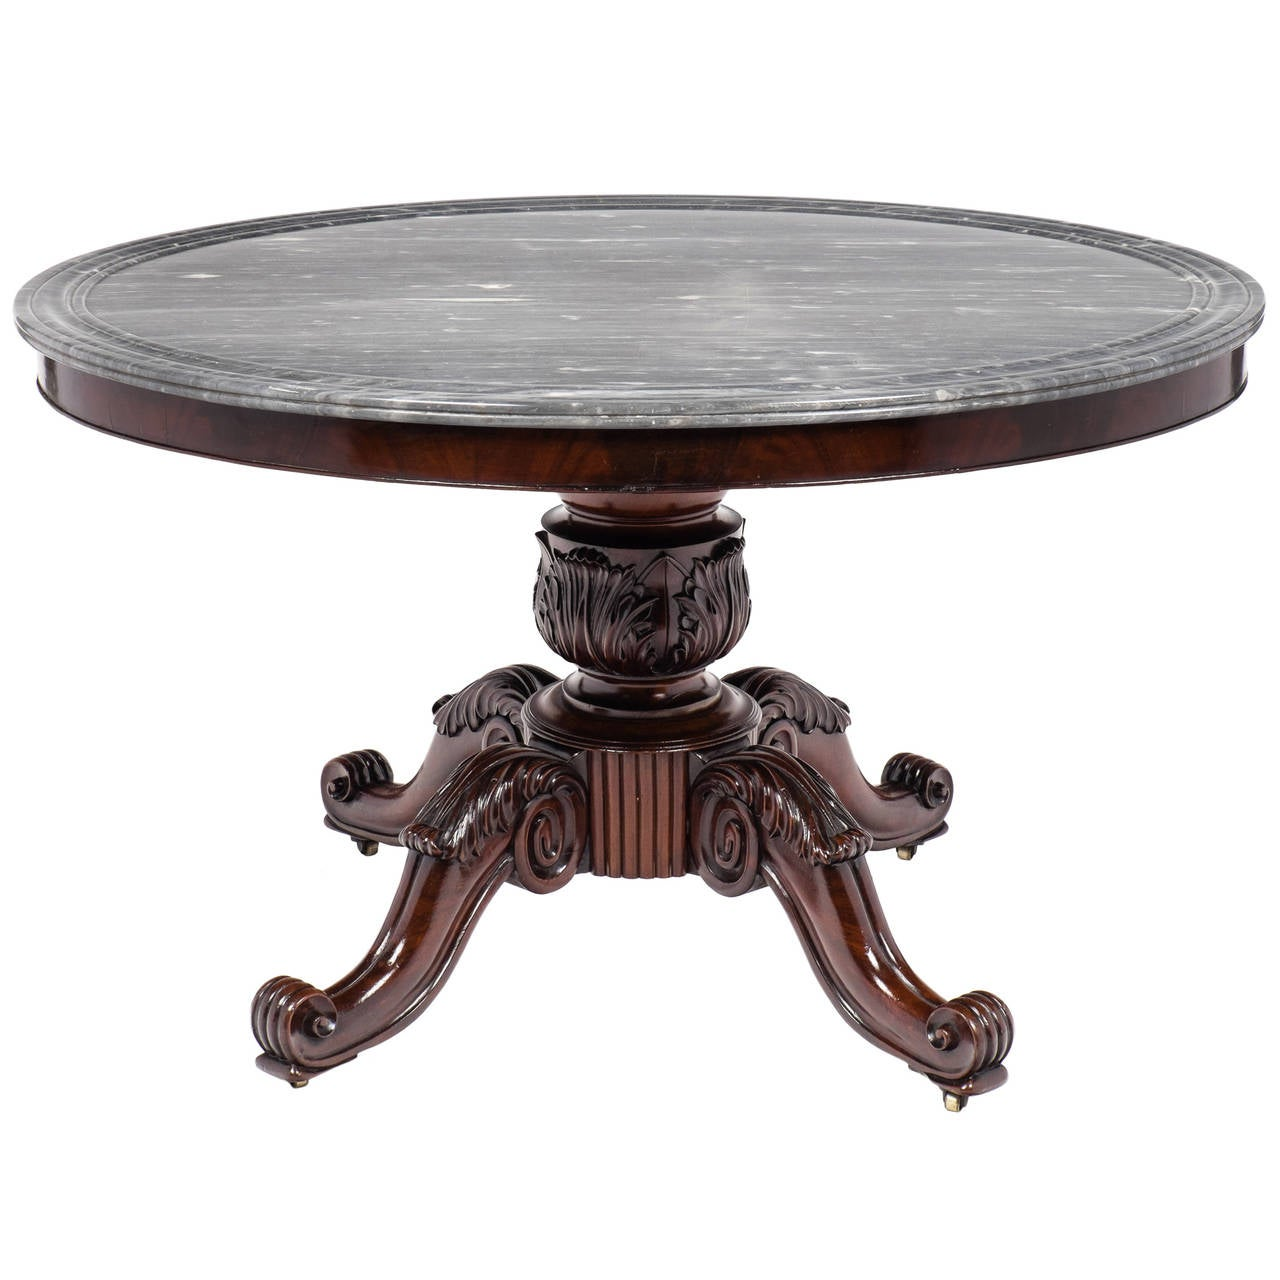 French louis philippe period pedestal table at 1stdibs for Table louis philippe